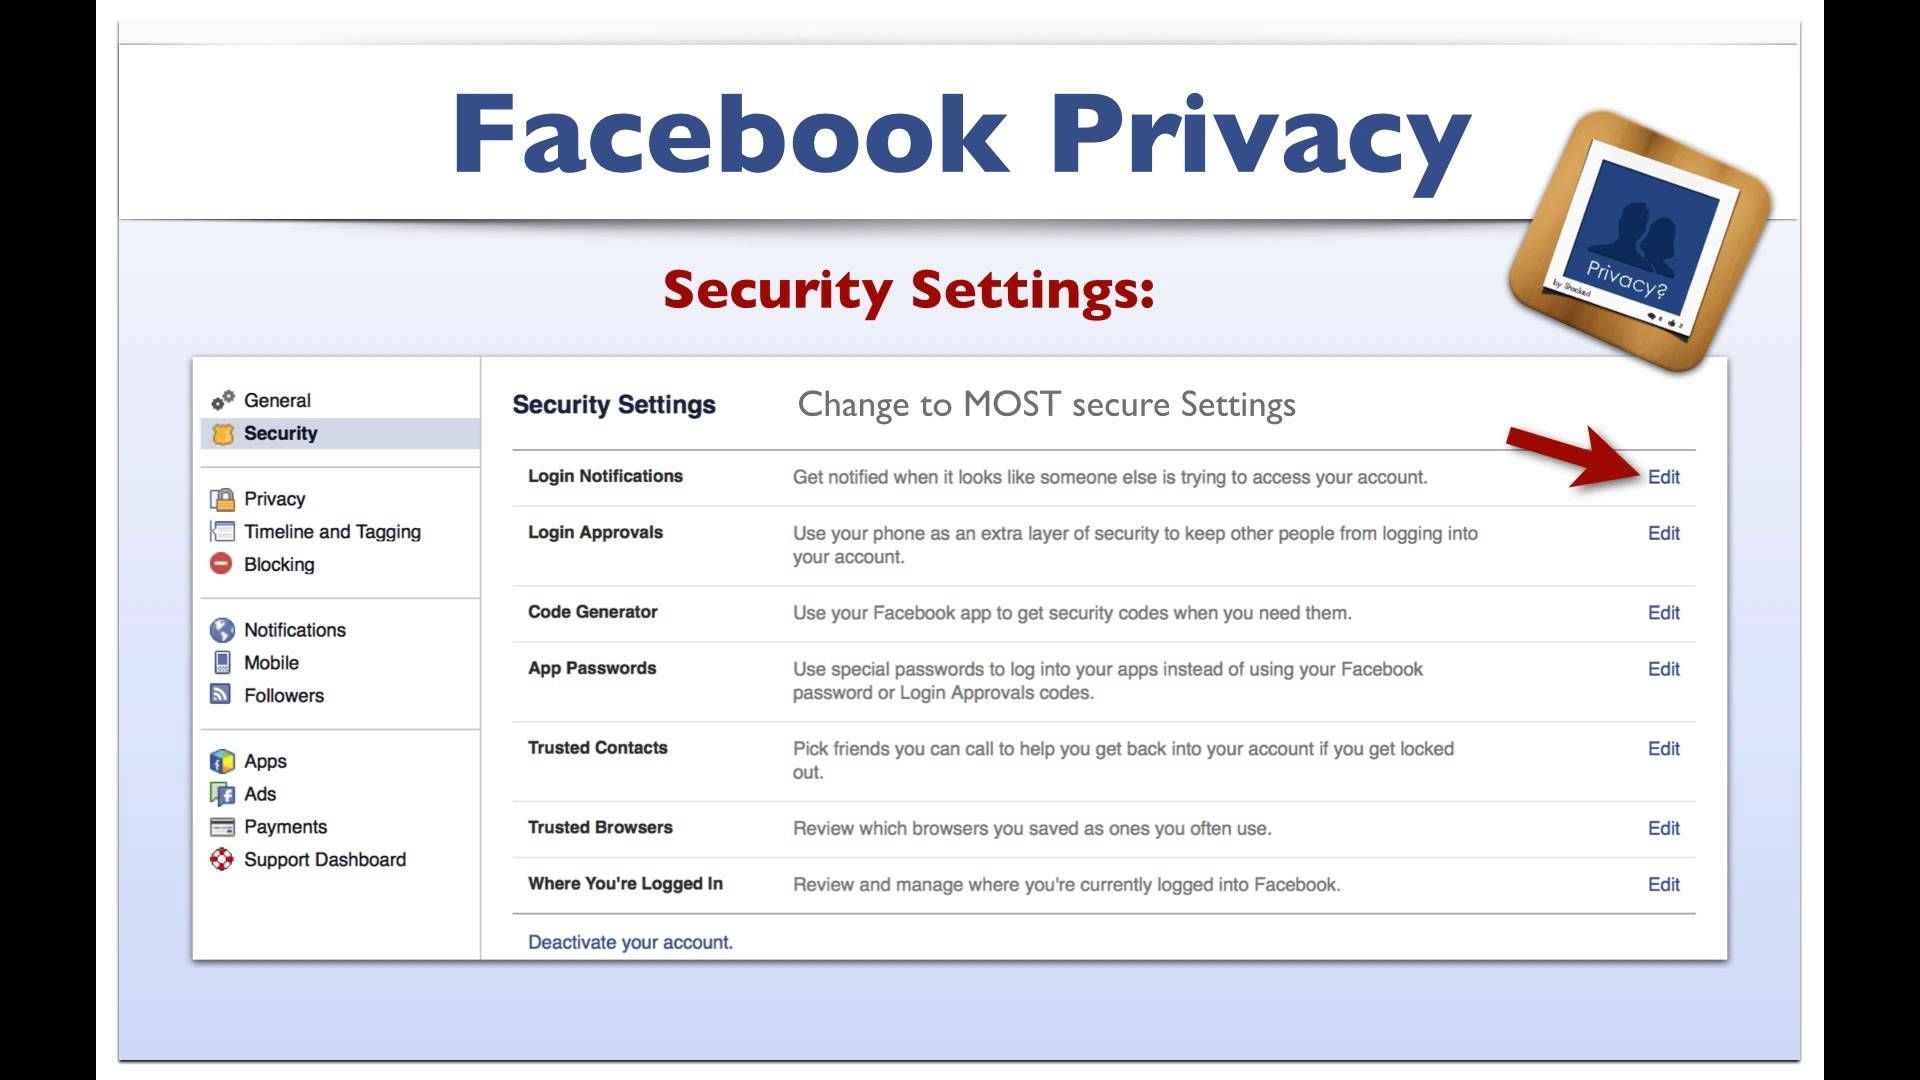 Advanced facebook privacy settings 2015 education articles advanced facebook privacy settings 2015 ccuart Gallery